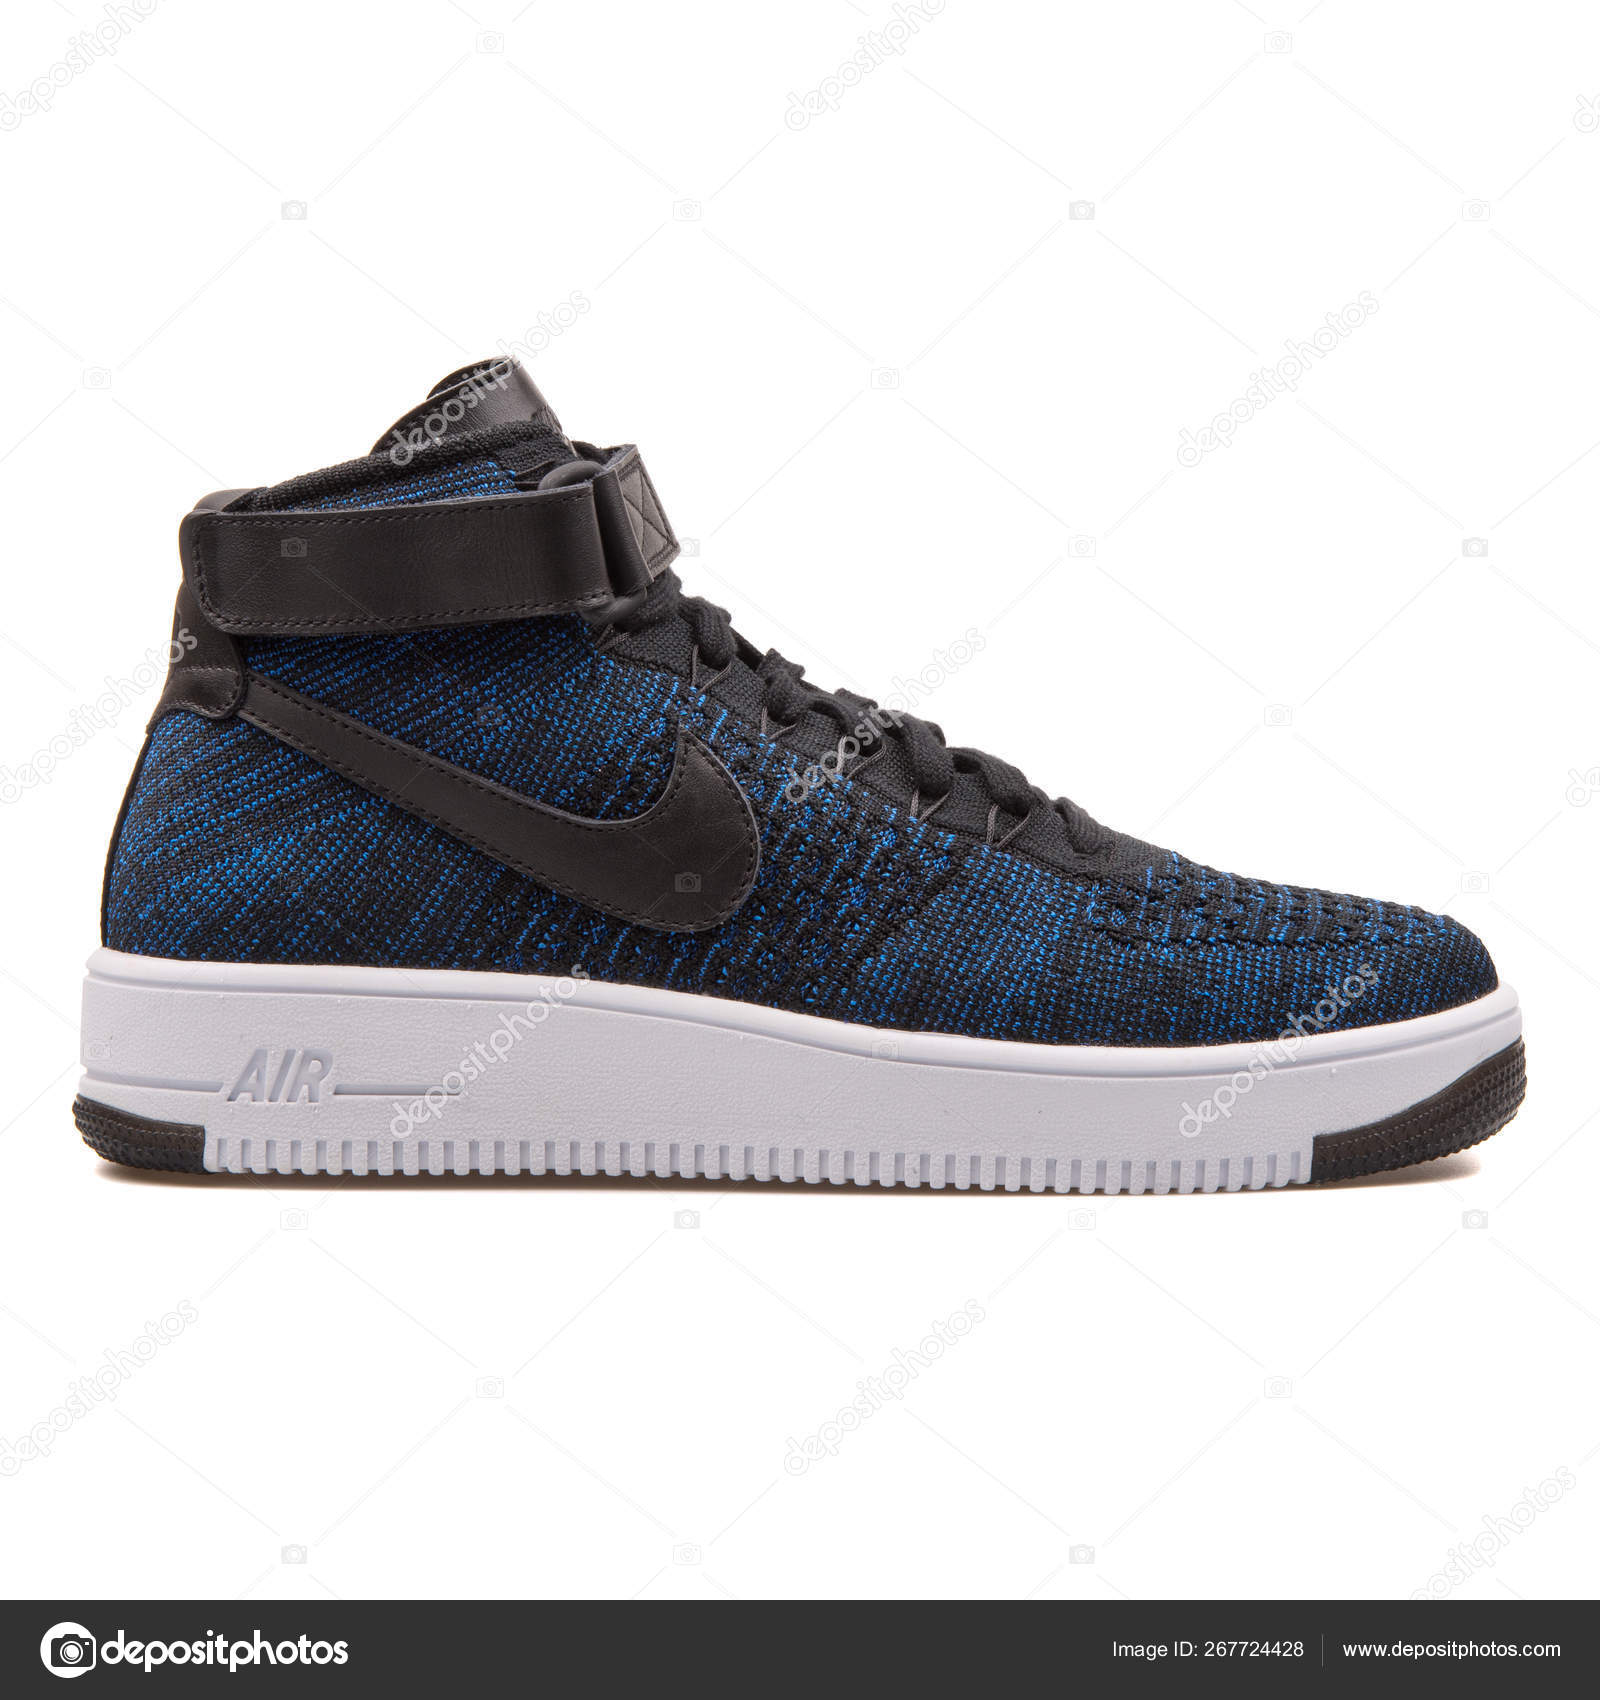 Nike Air Force 1 Ultra Flyknit Mid Black And Blue Sneaker Stock